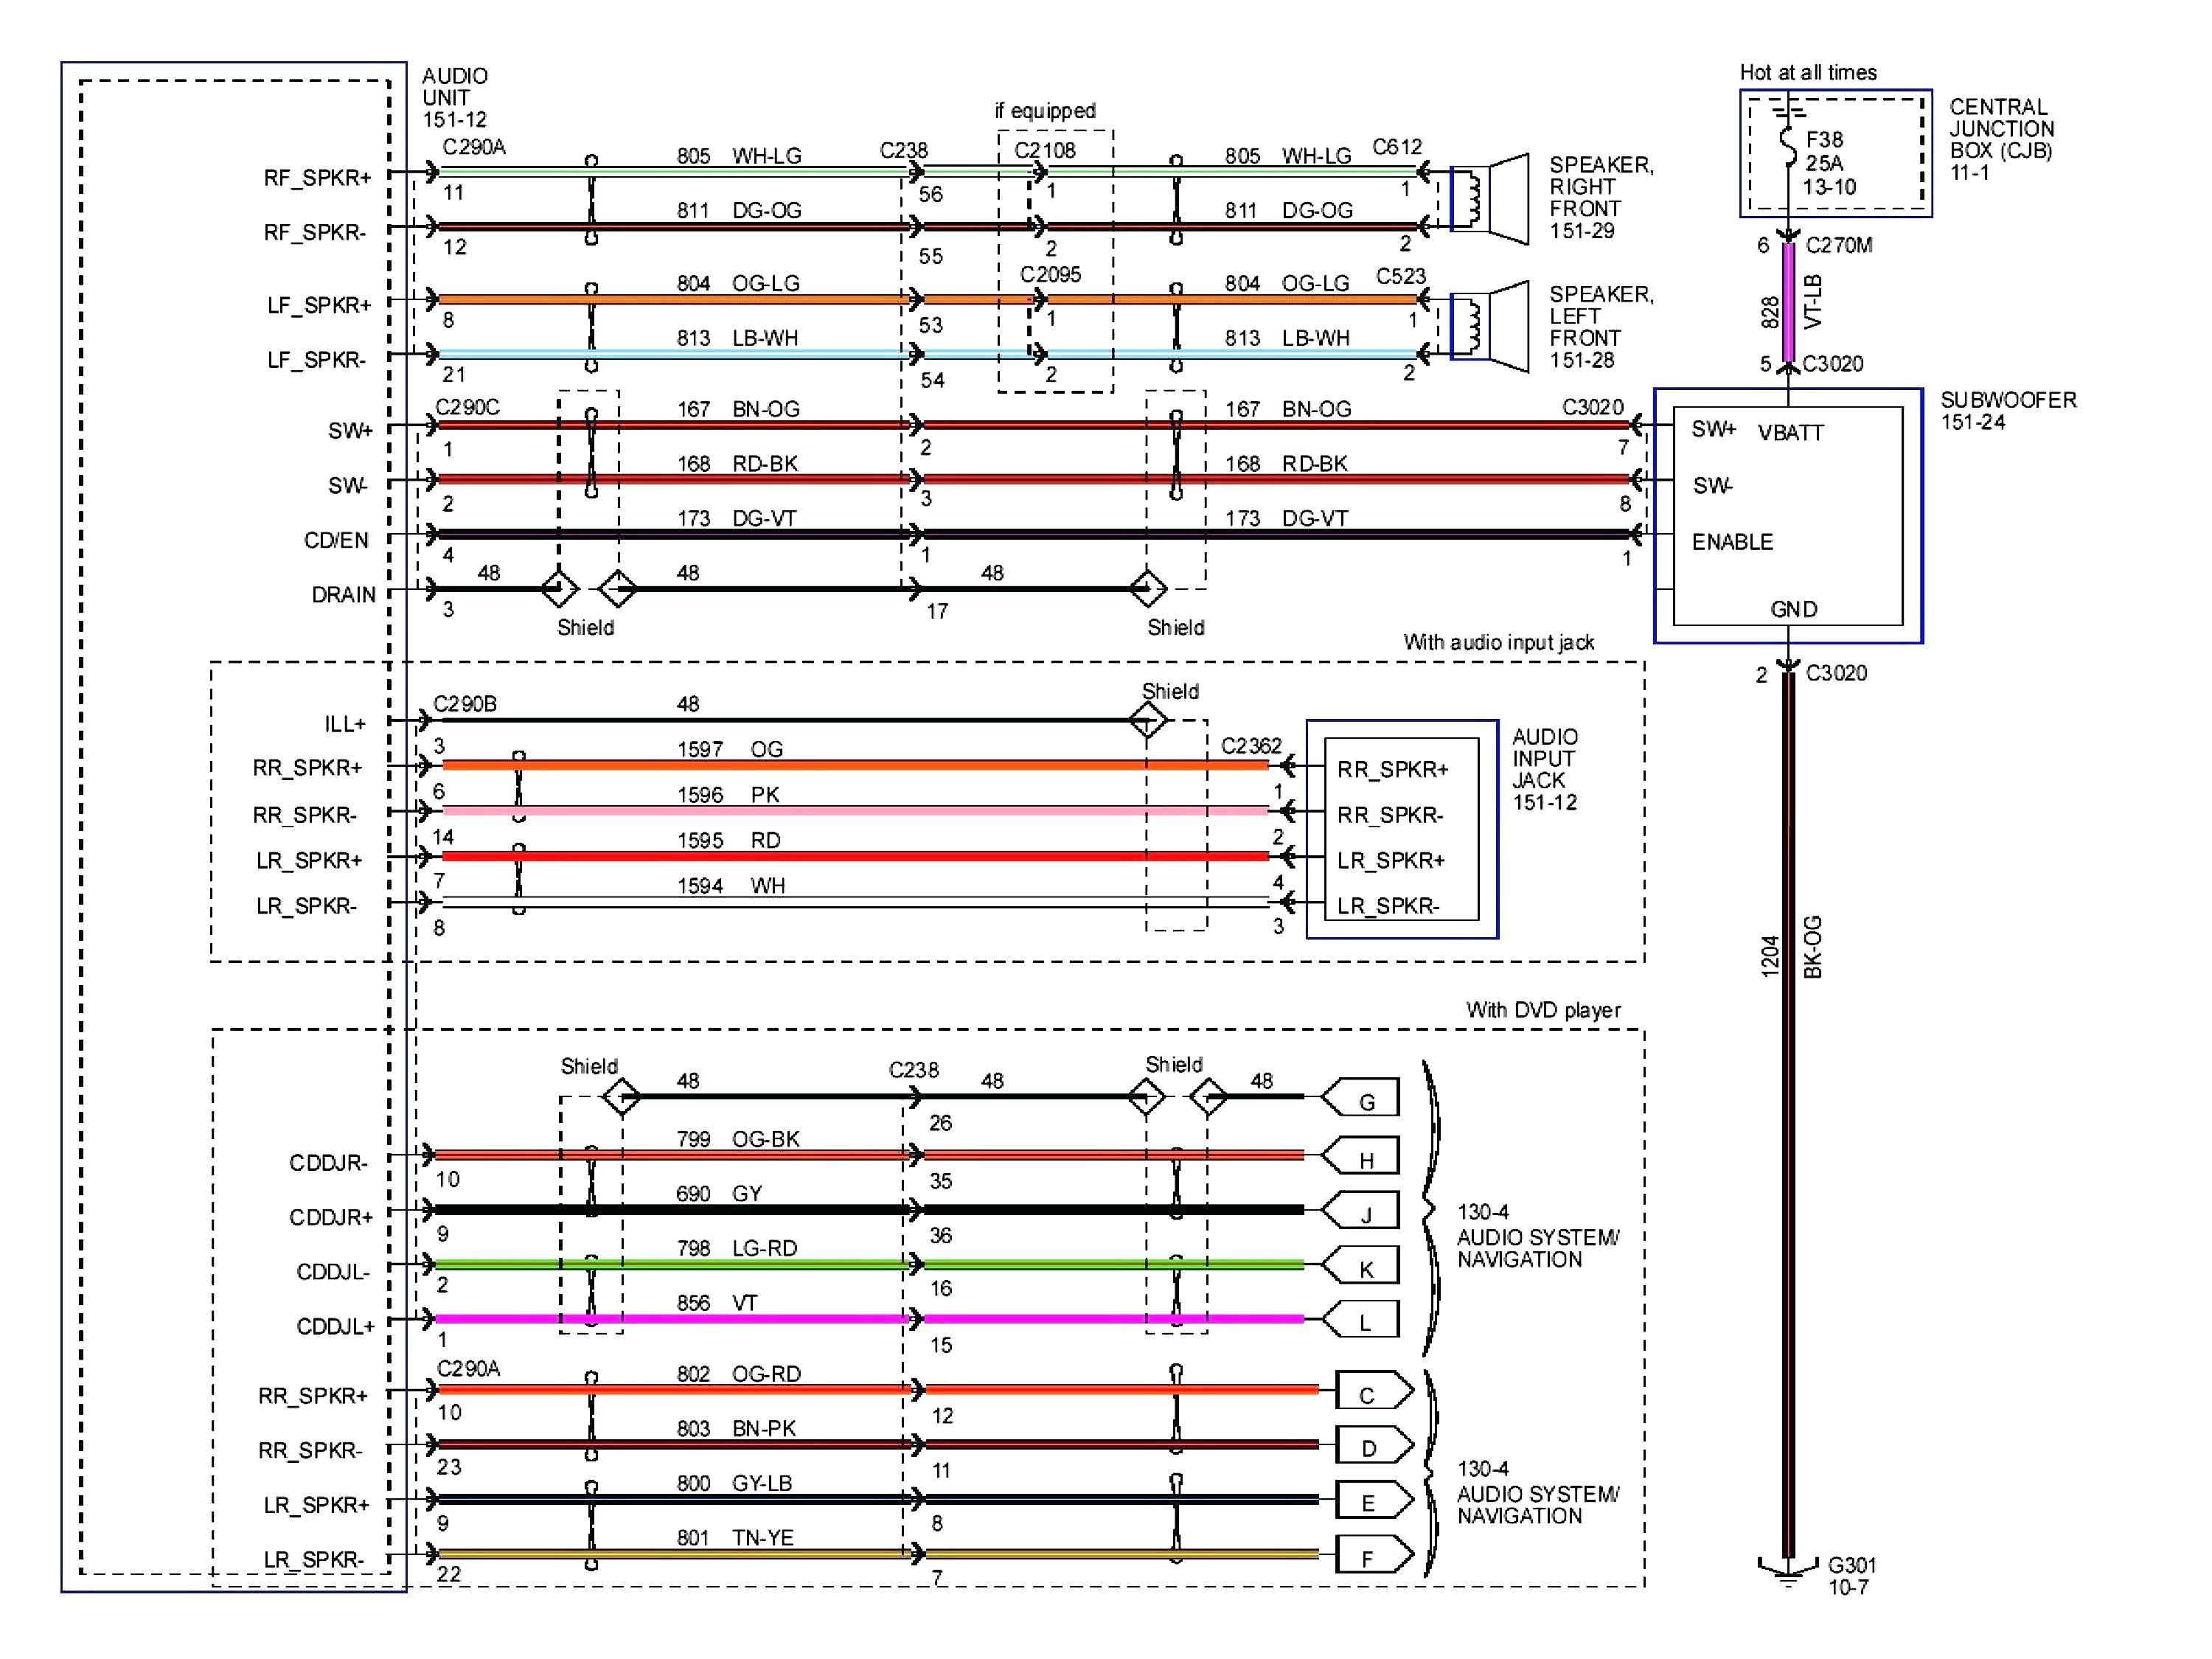 chevy s10 radio wiring diagram Download-chevy s10 radio wiring diagram Collection chevy s10 blazer radio wiring diagram lukaszmira for chunyan 9-l